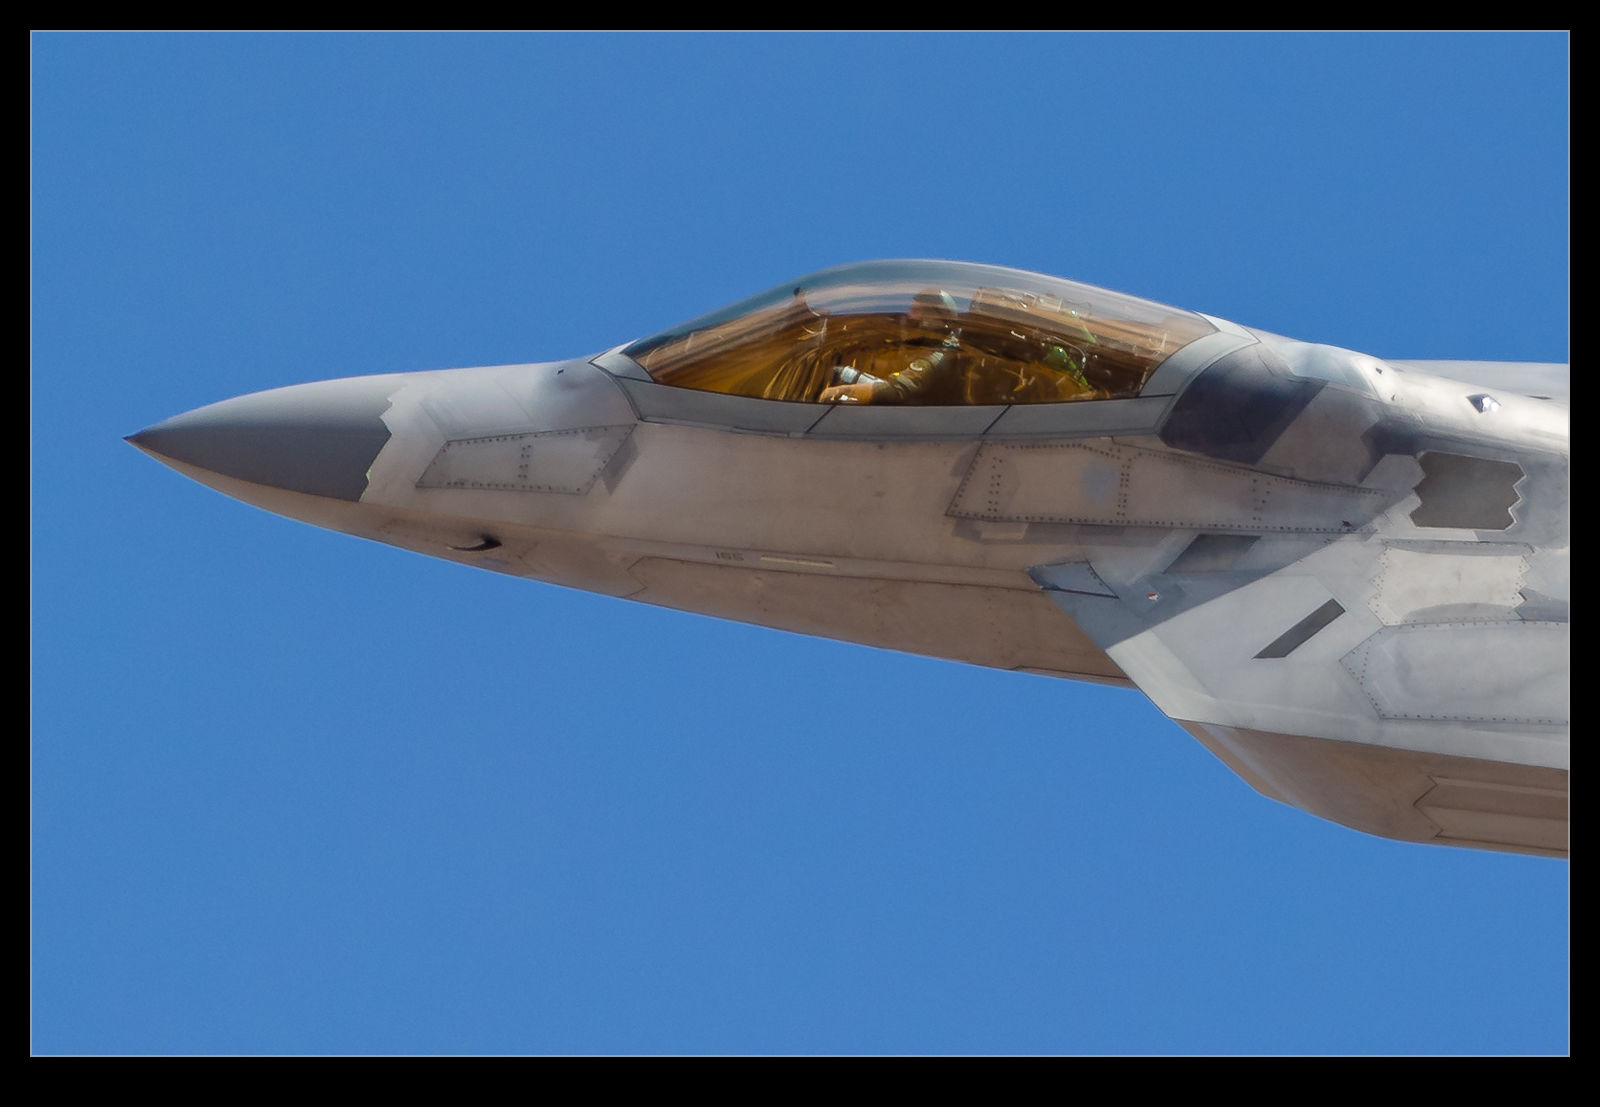 A USAF F-22A turns towards the ranges after takeoff from Nellis AFB as part of a Red Flag mission.